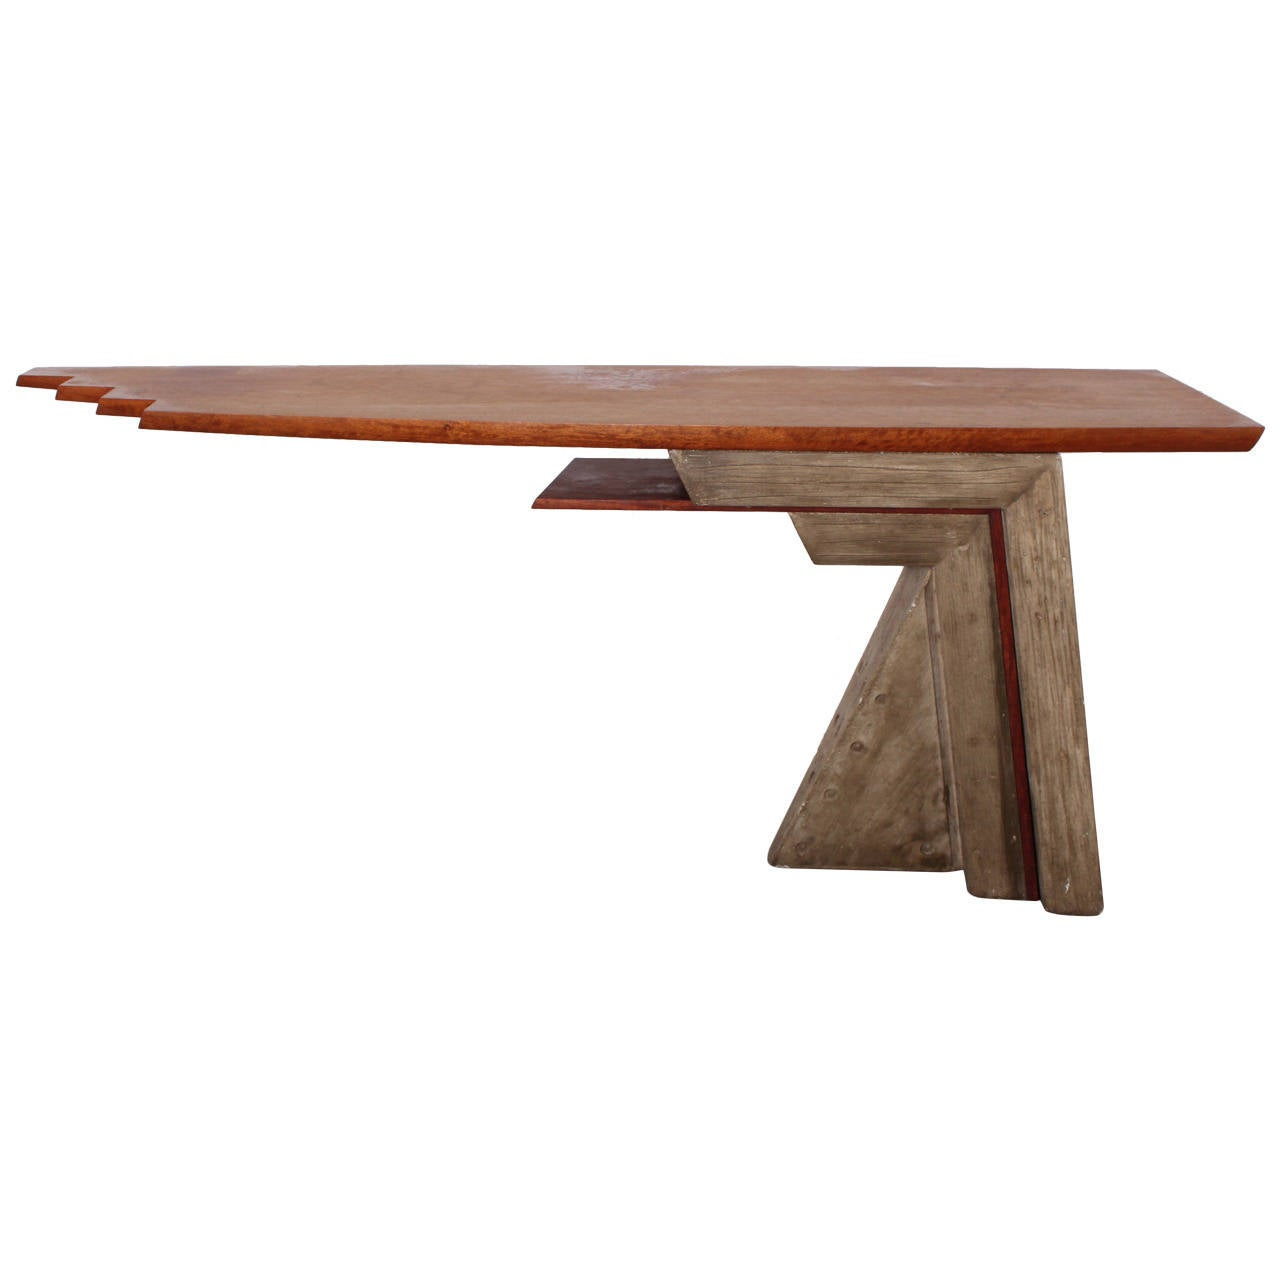 Architectural Concrete And Wood Console Table 1